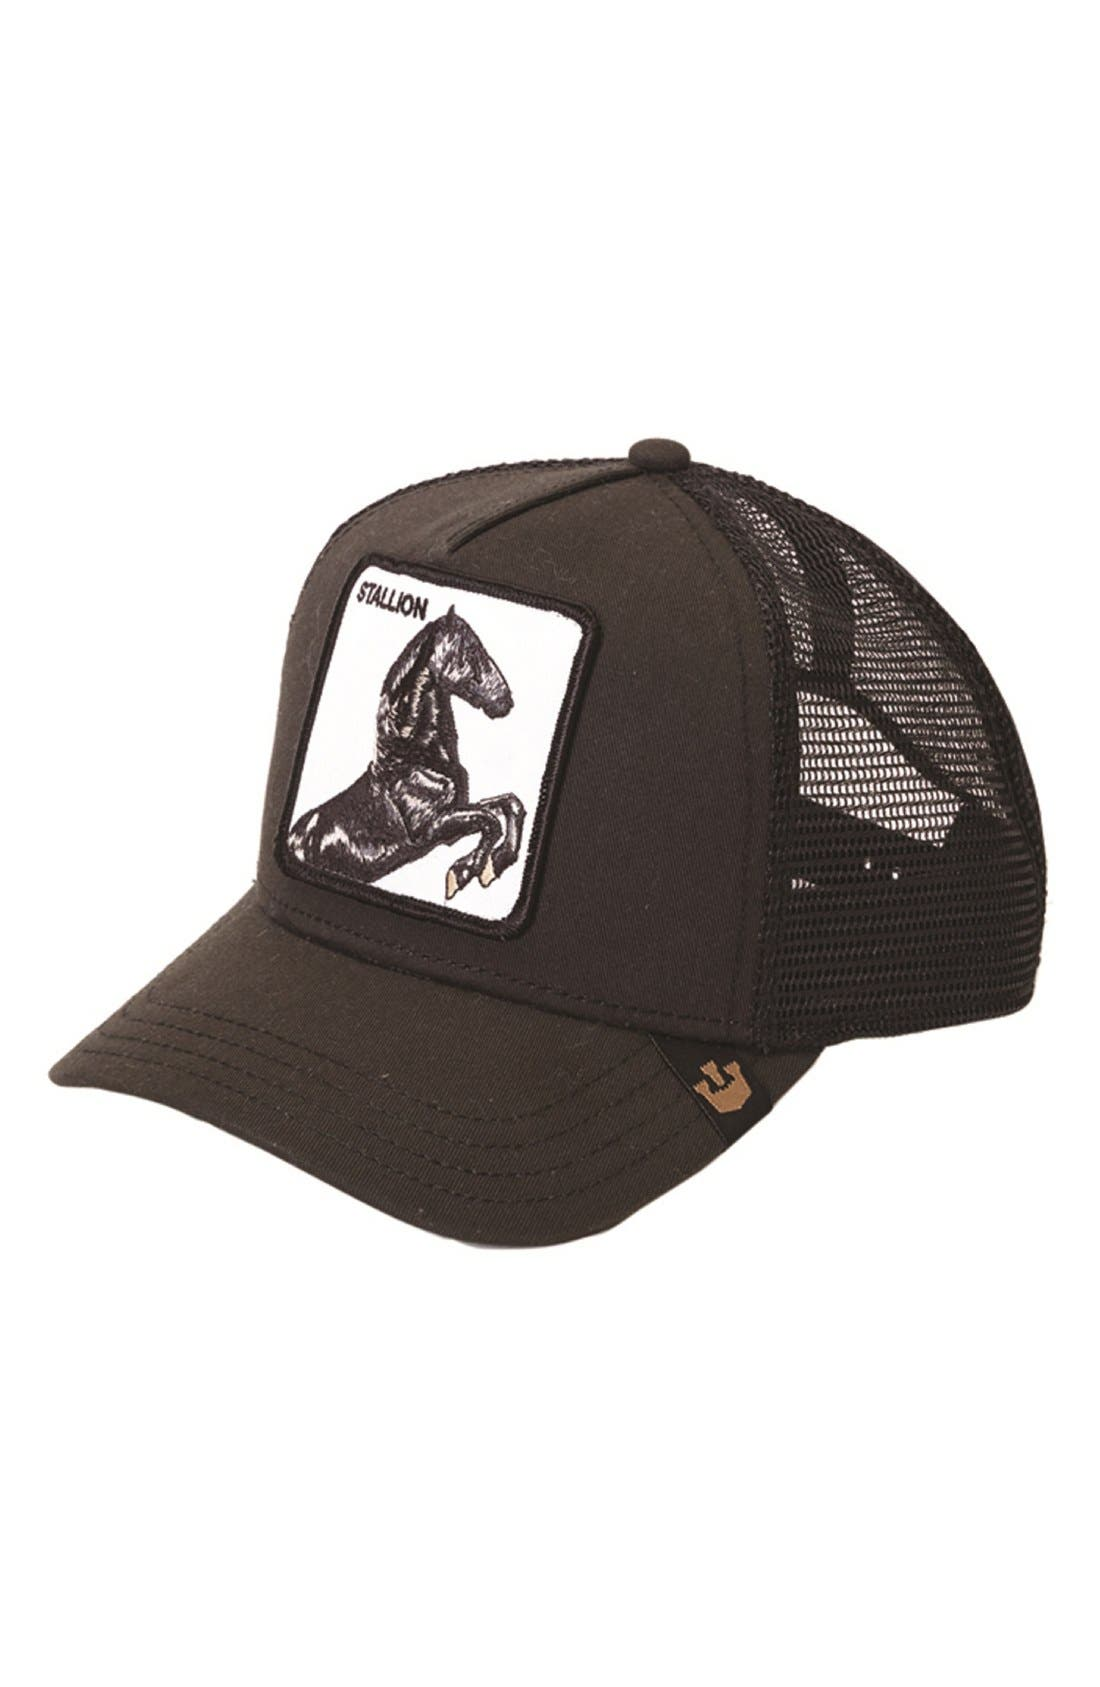 Alternate Image 1 Selected - Goorin Brothers 'Stallion' Trucker Hat